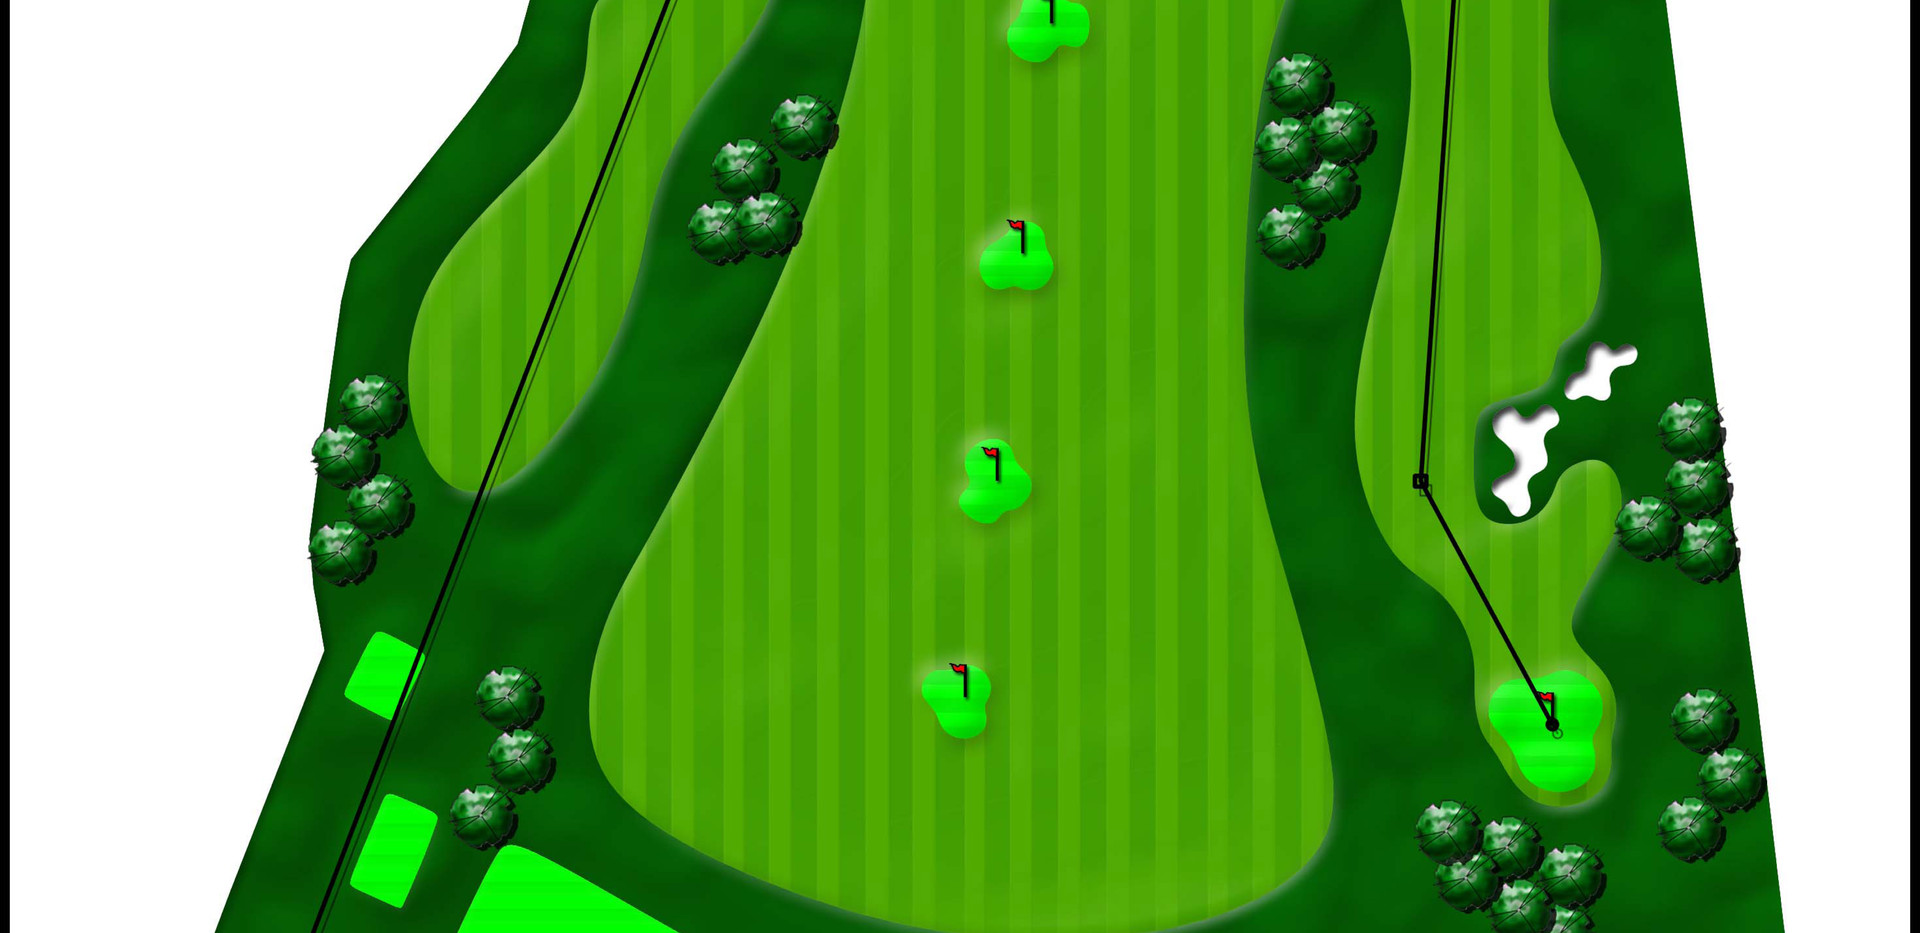 Golf Course Learning Facility colored concept